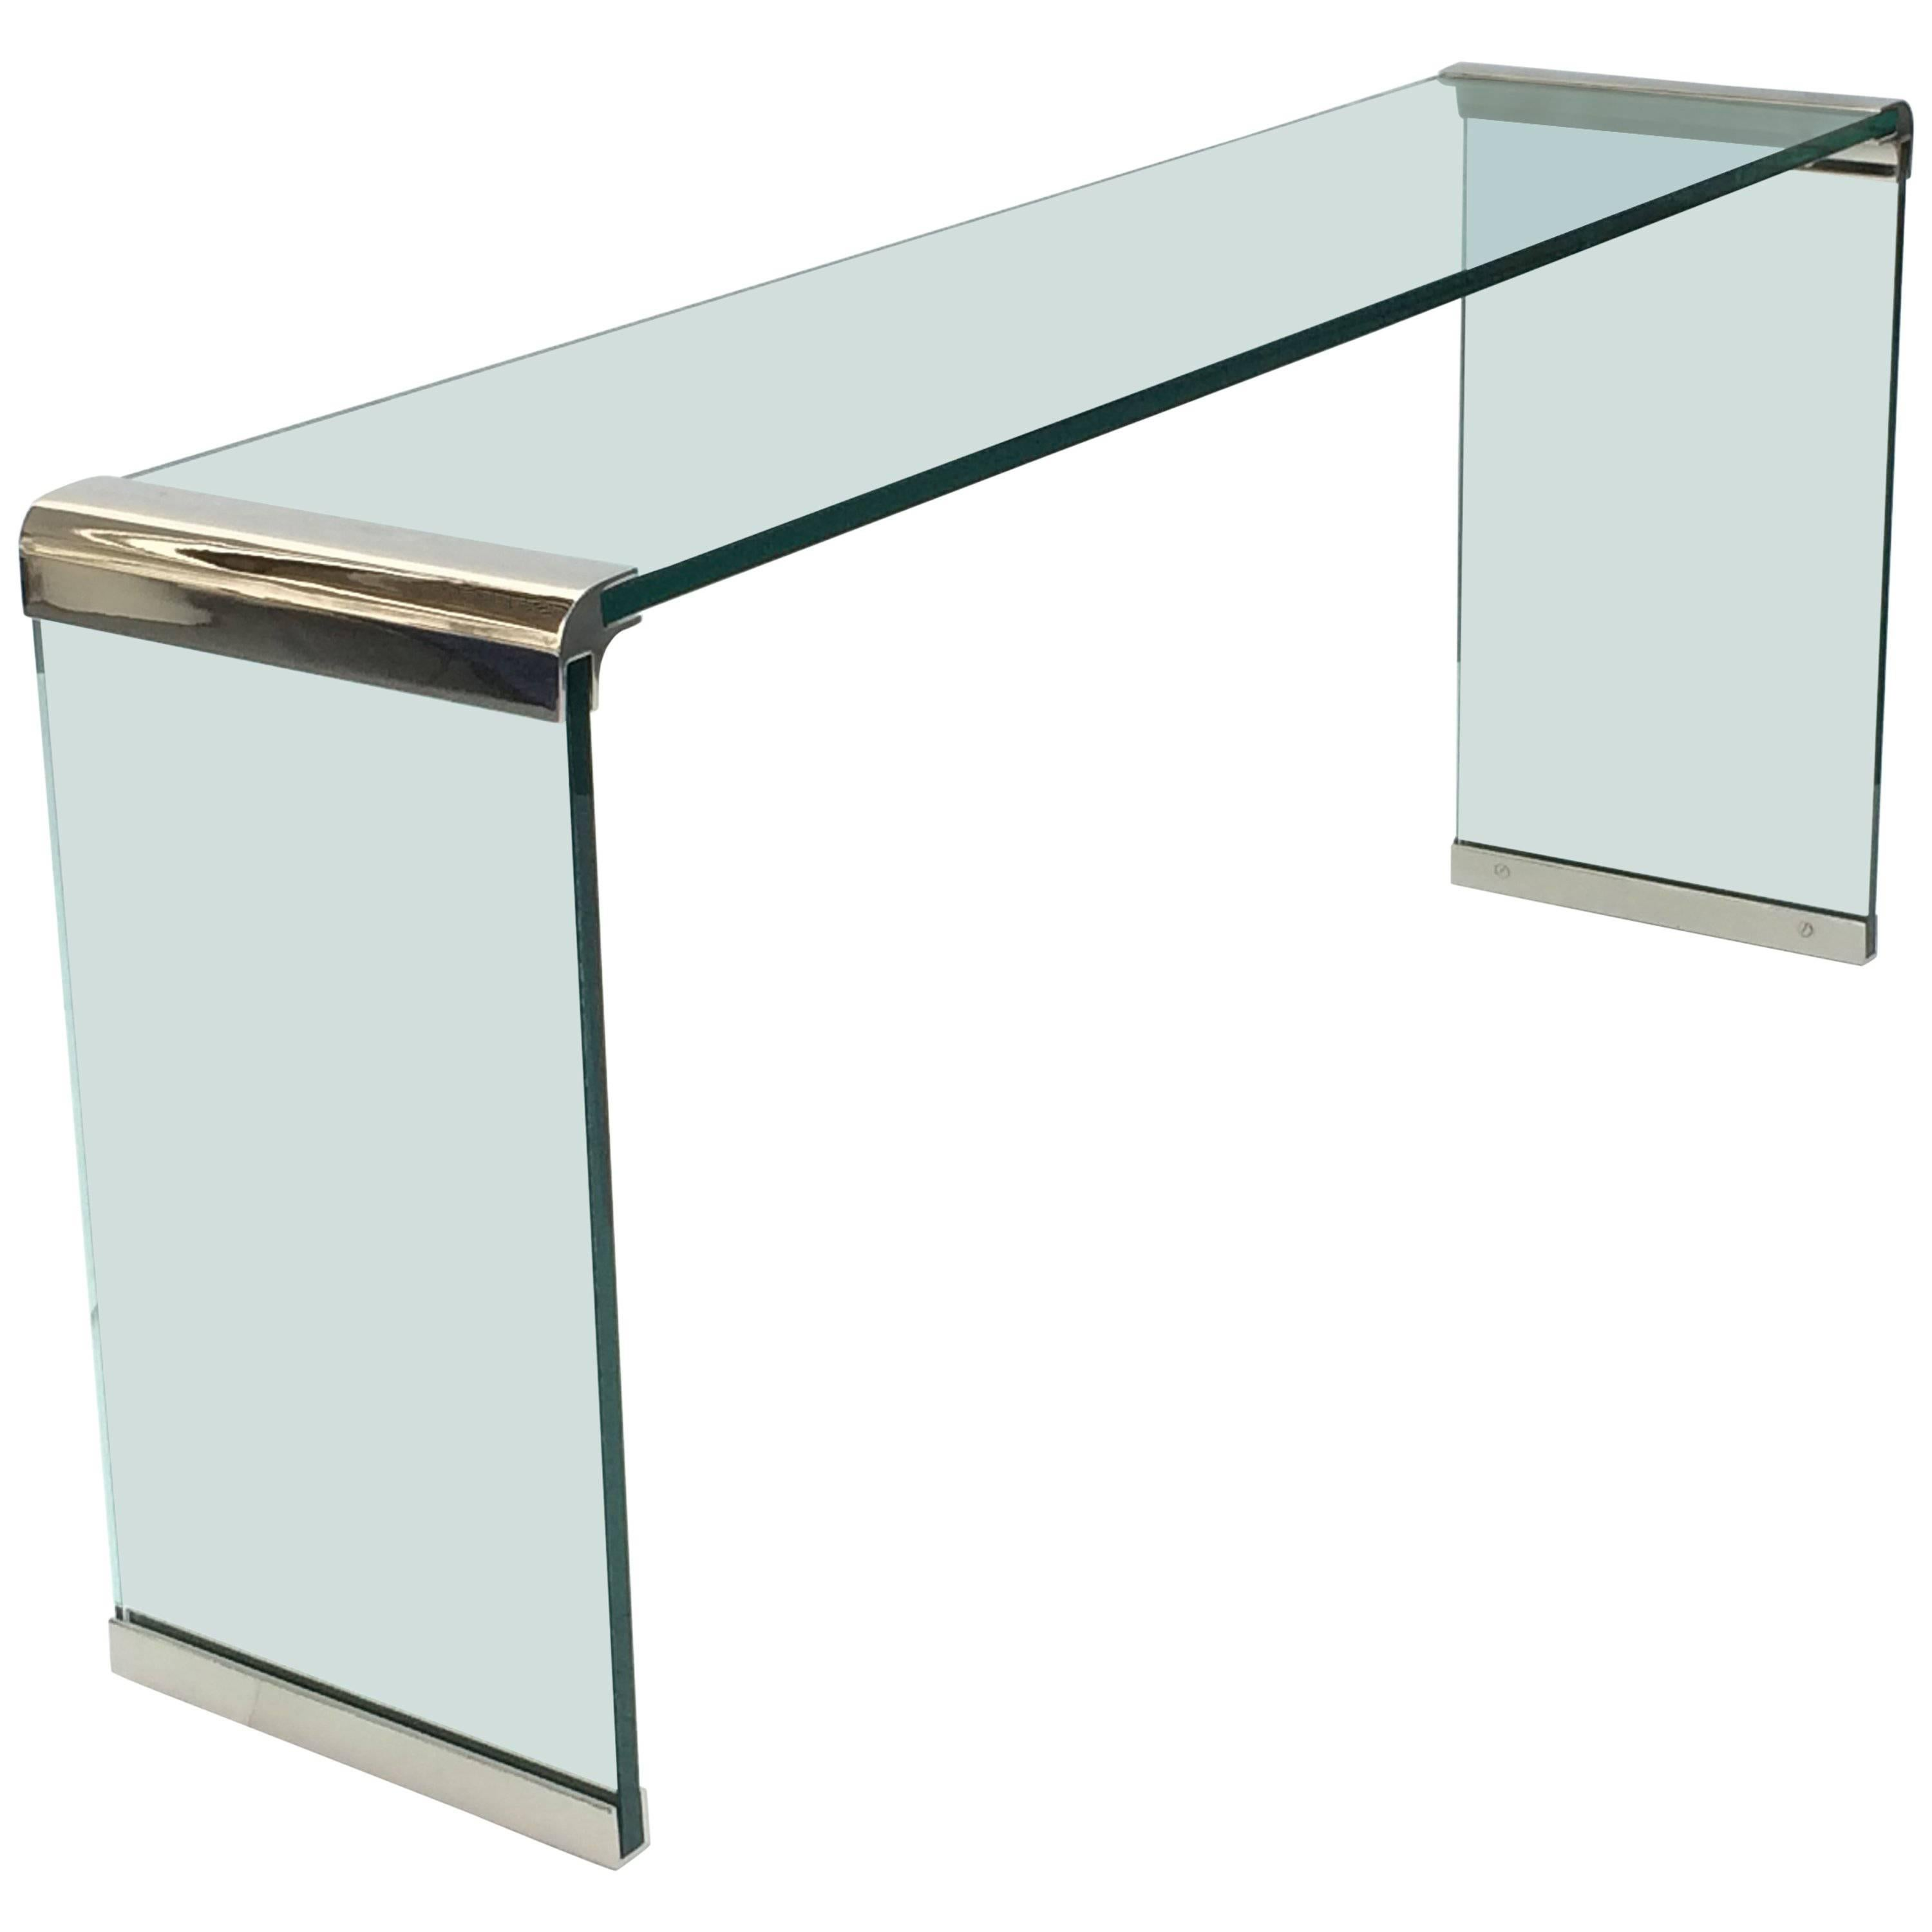 Nickel And Glass Console Table By Leon Rosen For Pace Collection For Sale At 1stdibs